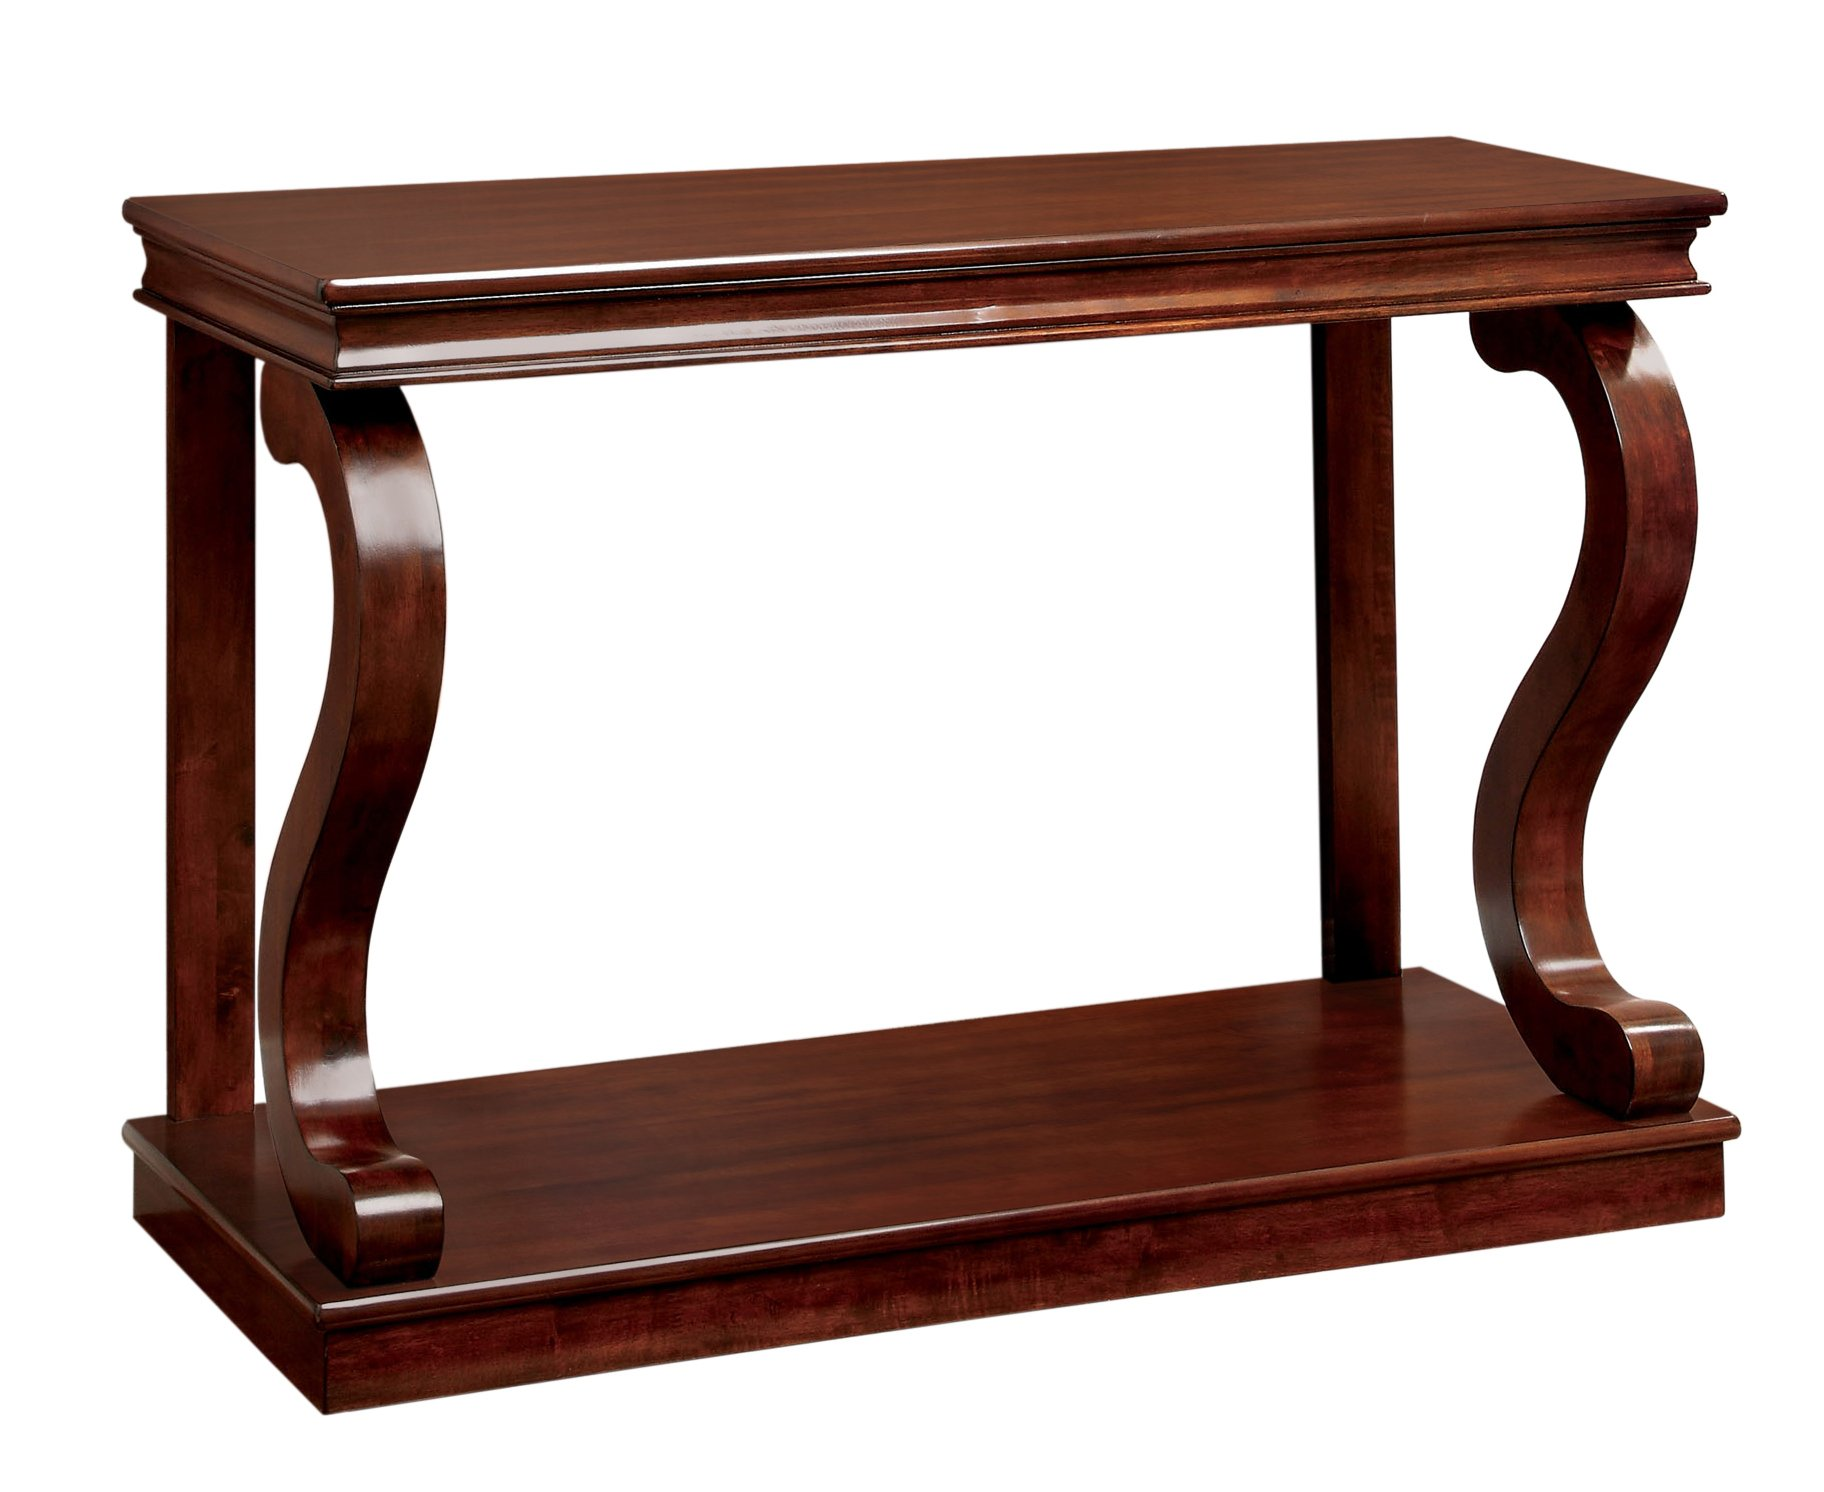 Furniture of America Chersie Wood Console Table, Cherry